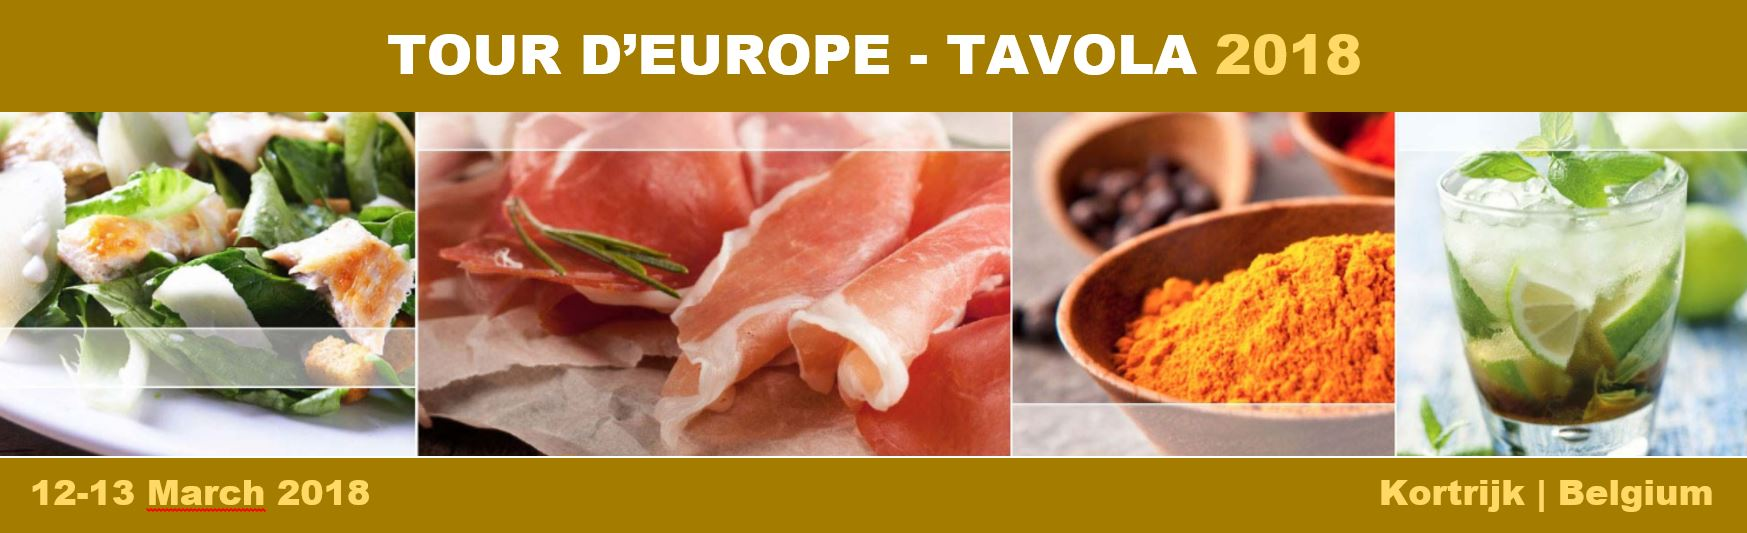 "Enterprise Europe Network- Tour D' Europe ""Tavola 2018"""